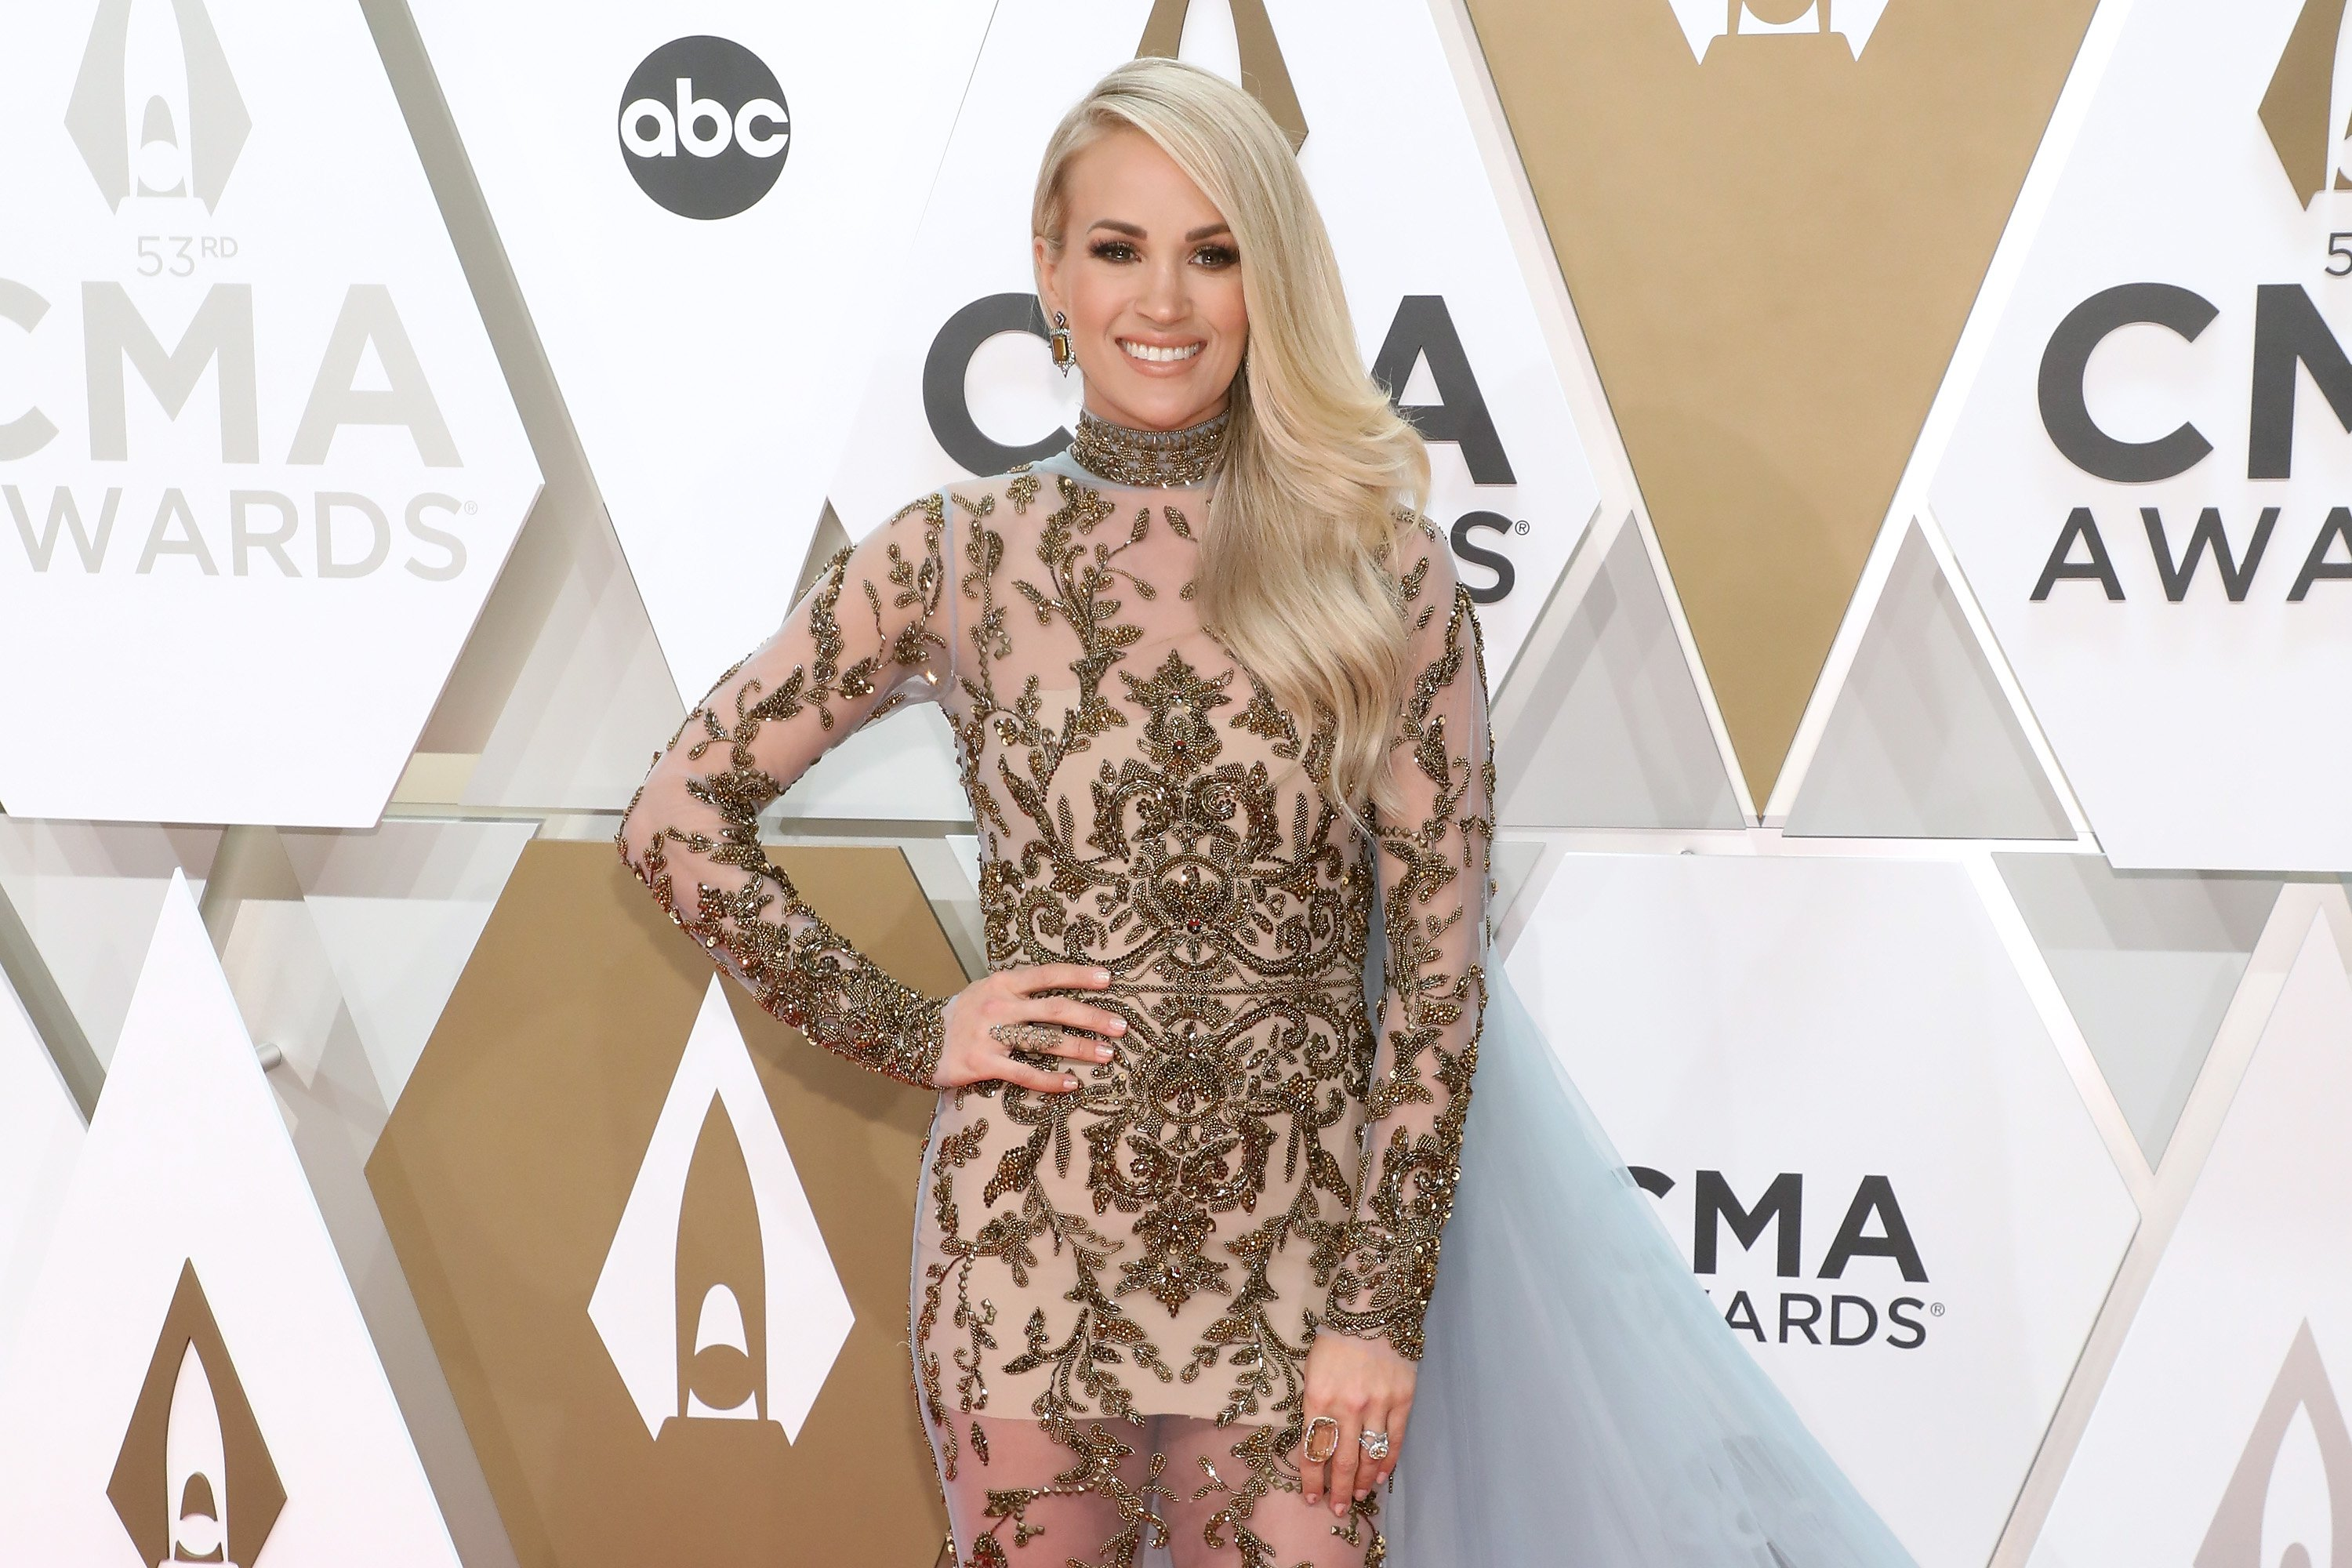 Carrie Underwood attends the 53nd annual CMA Awards on November 13, 2019, in Nashville, Tennessee. | Source: Getty Images.